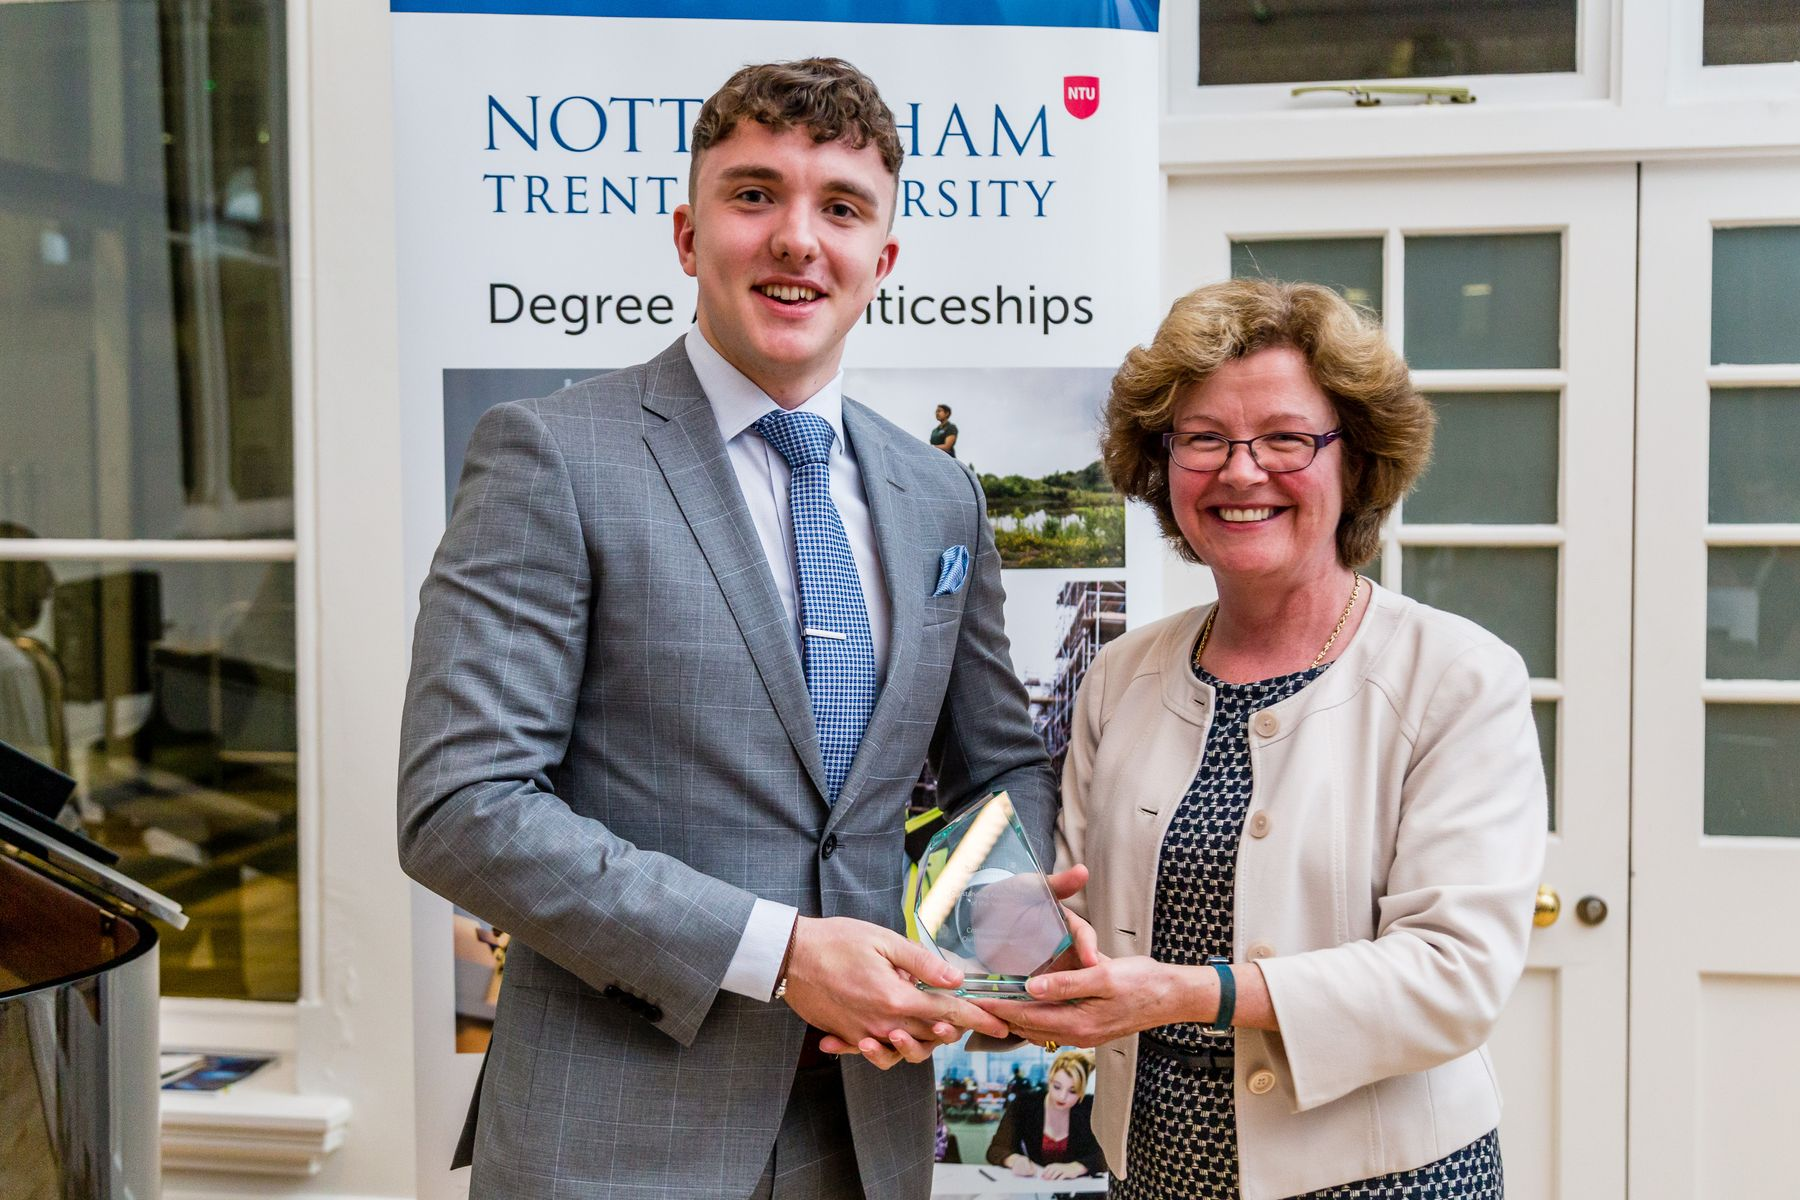 Apprentice of the year within the field of Construction collecting their award